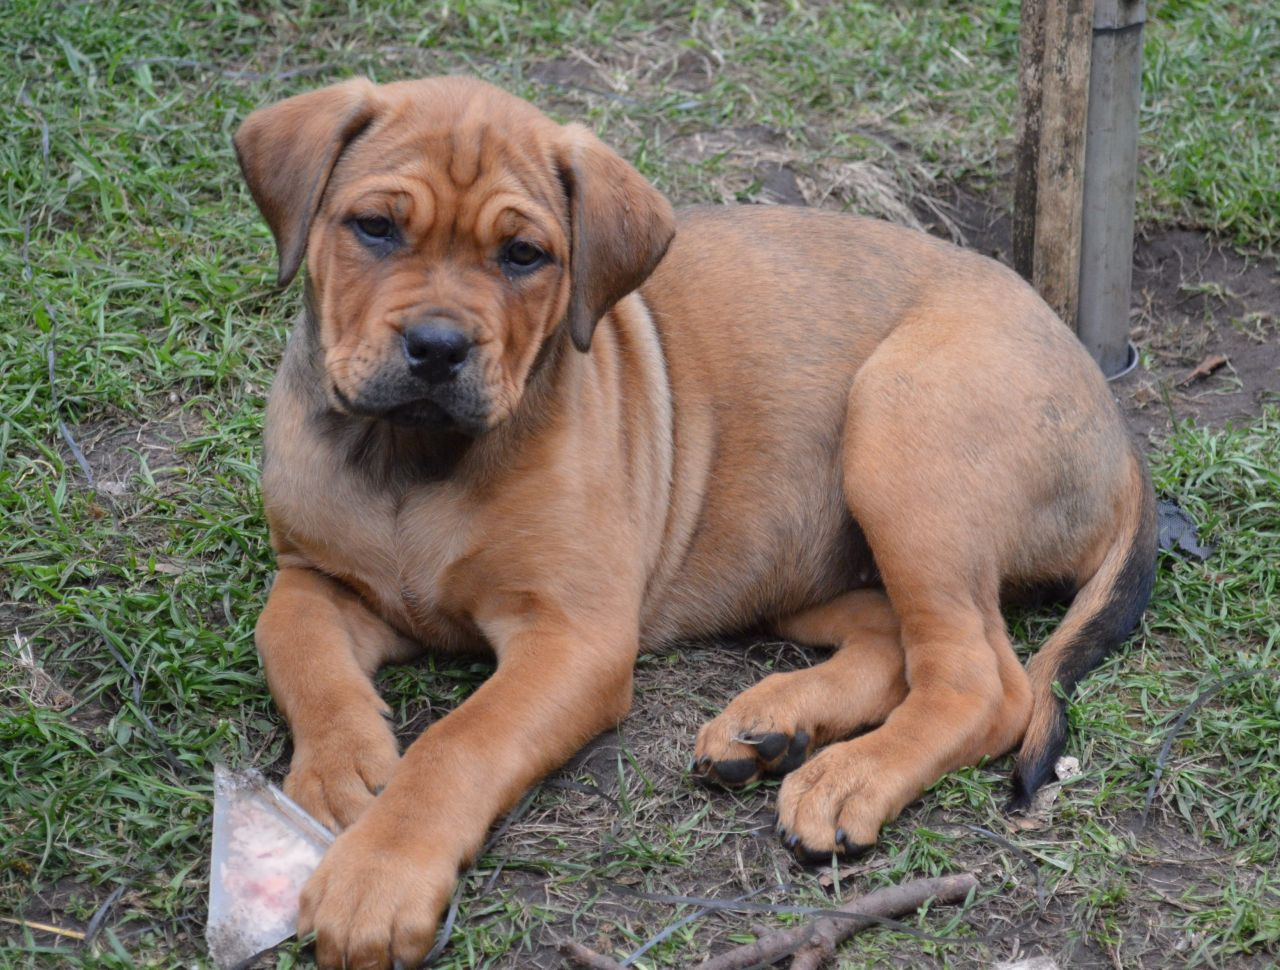 Dogue de Bordeaux Puppies: Dogue Rottweiler X Dogue De Bordeaux Puppies Wirral Breed